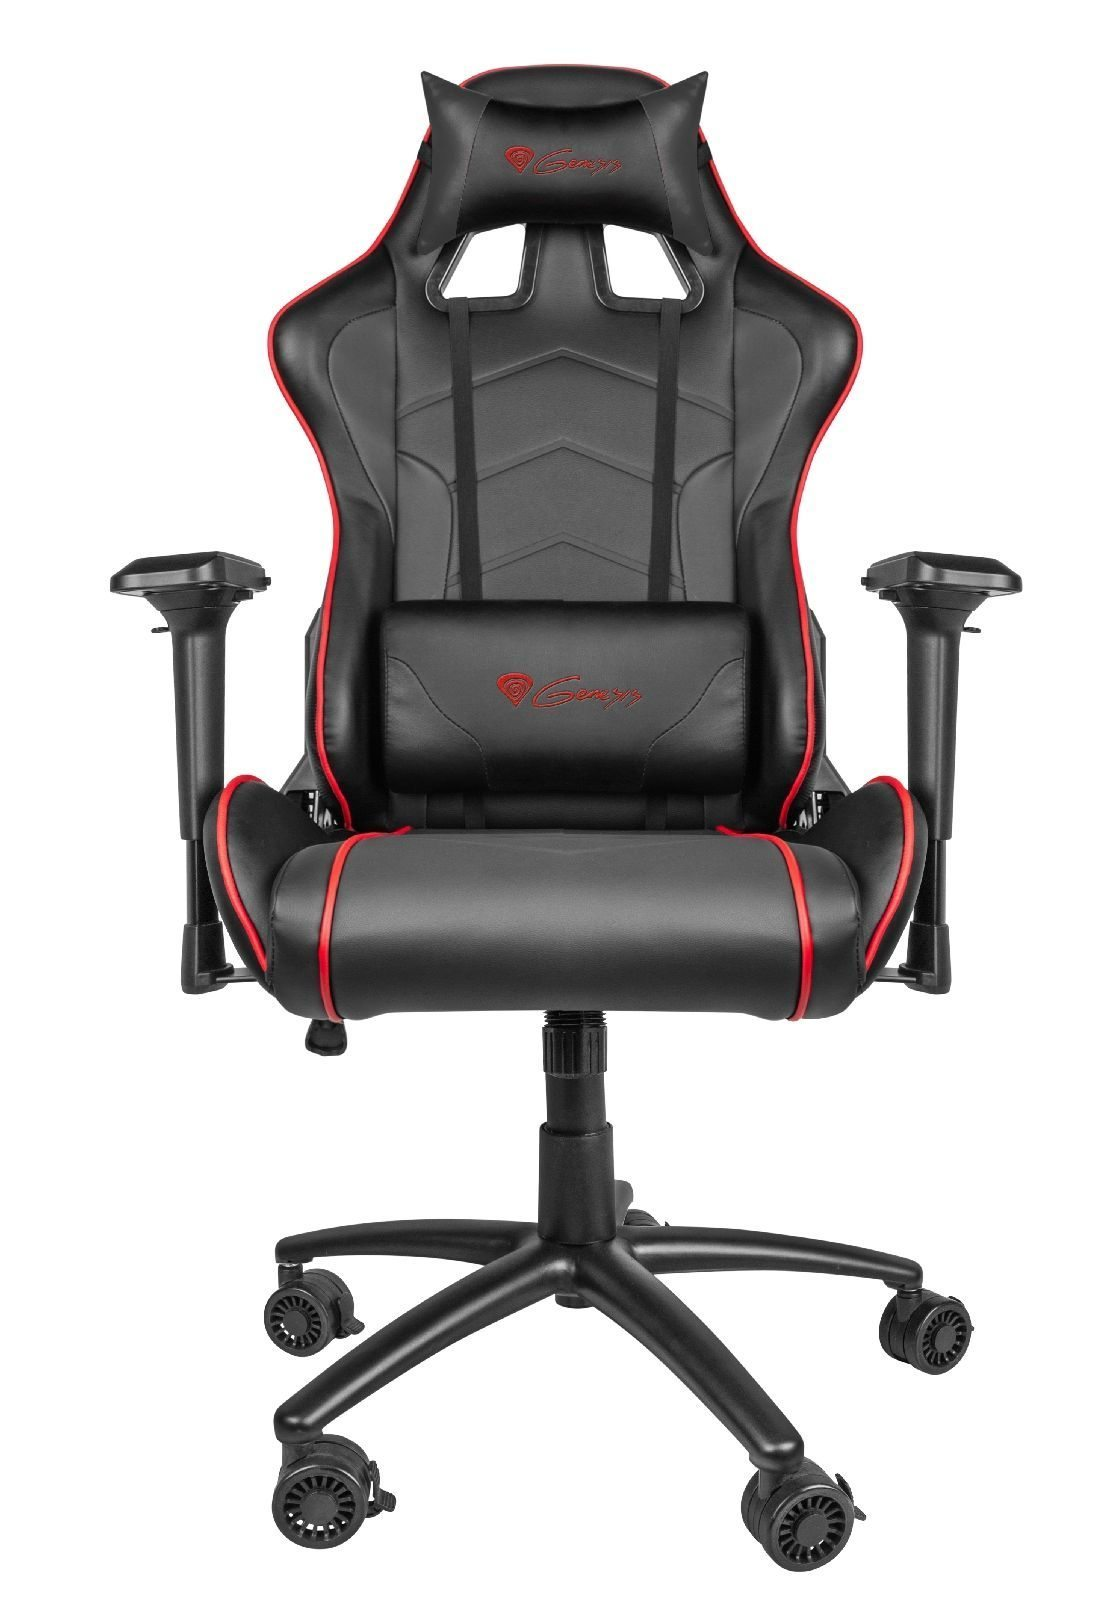 Gaming Chair NITRO 880 Black - NFG-0911